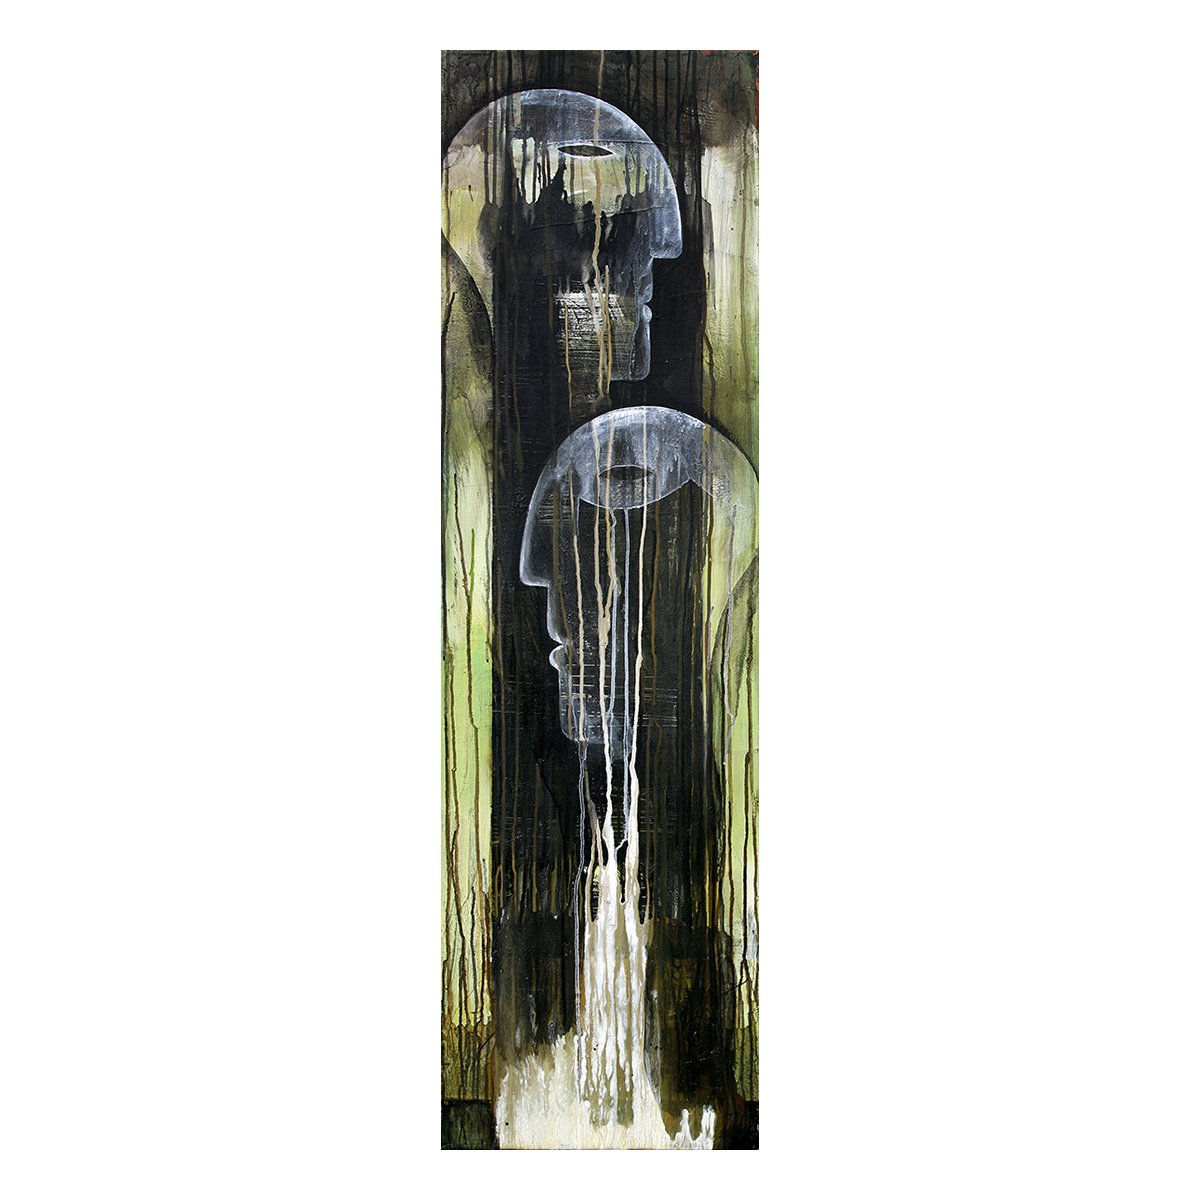 Photo of Painting by Terese Andersen, 140x40, title; Growing